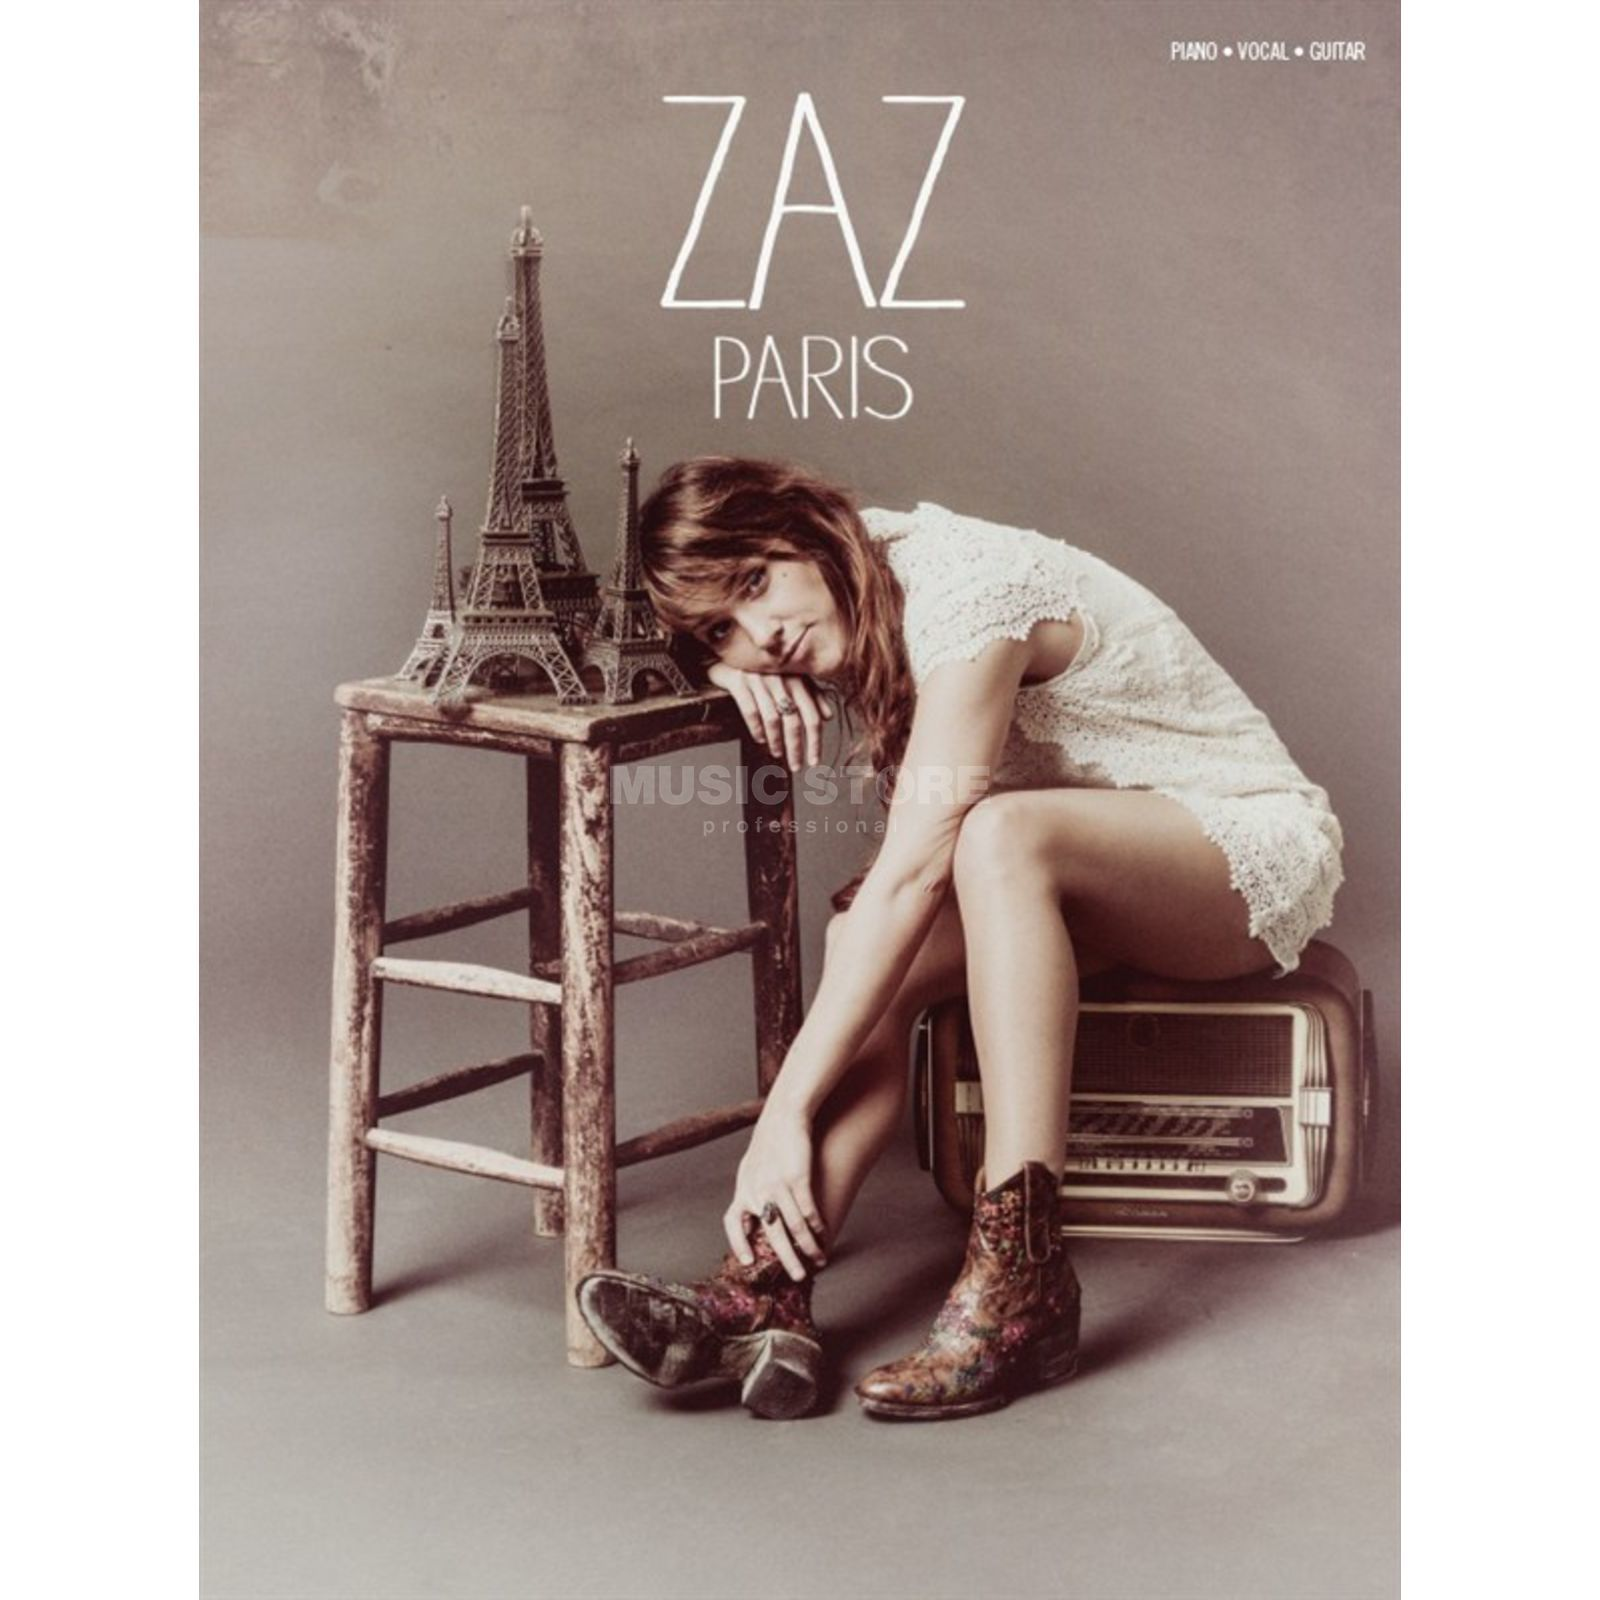 Wise Publications Zaz: Paris Produktbillede